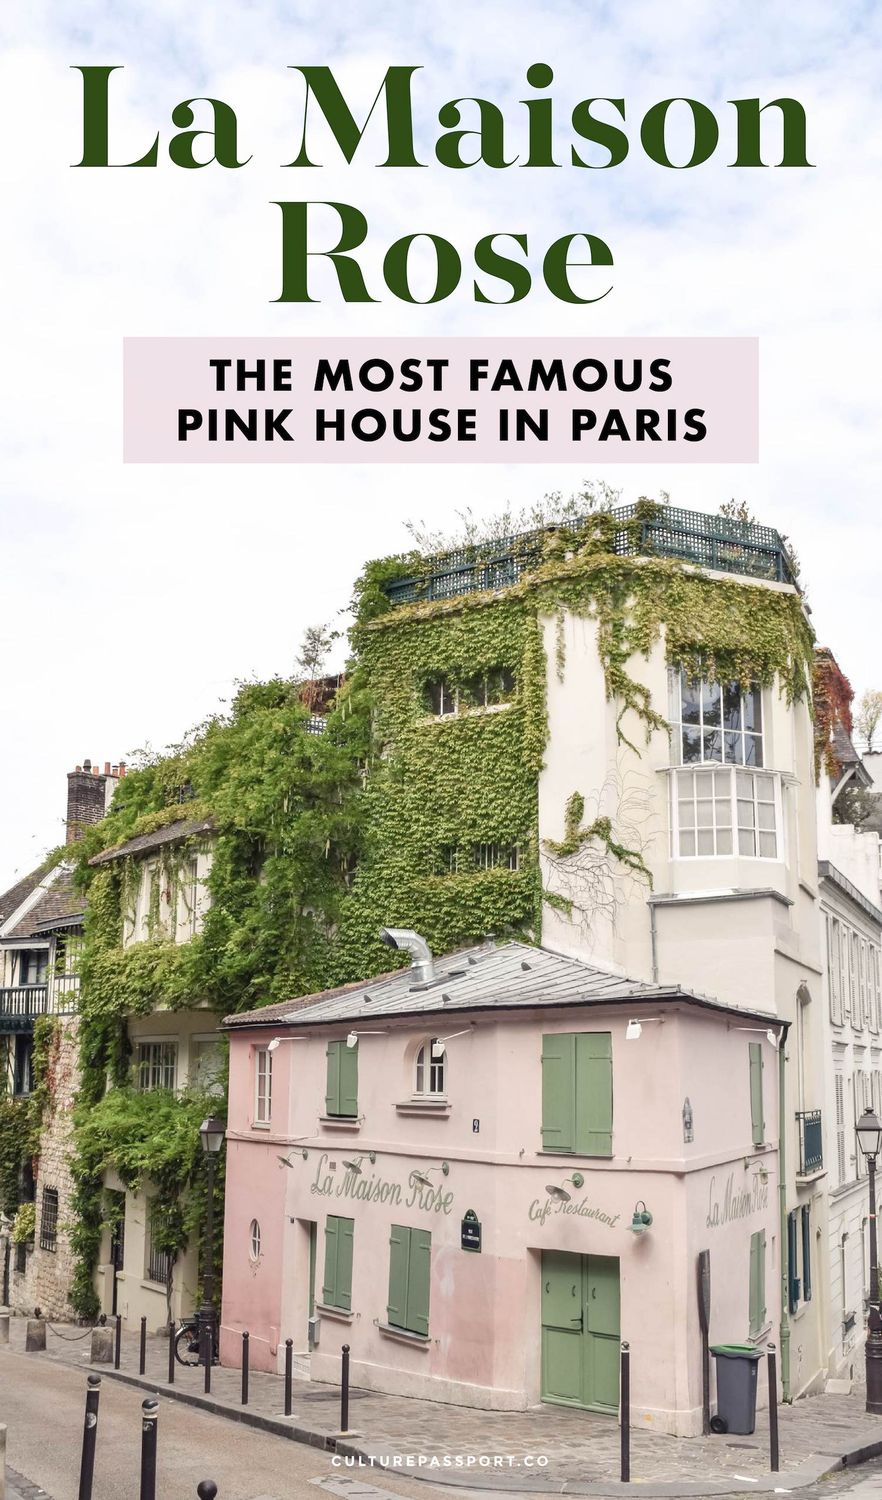 La Maison Rose -  The Famous Pink House In Paris